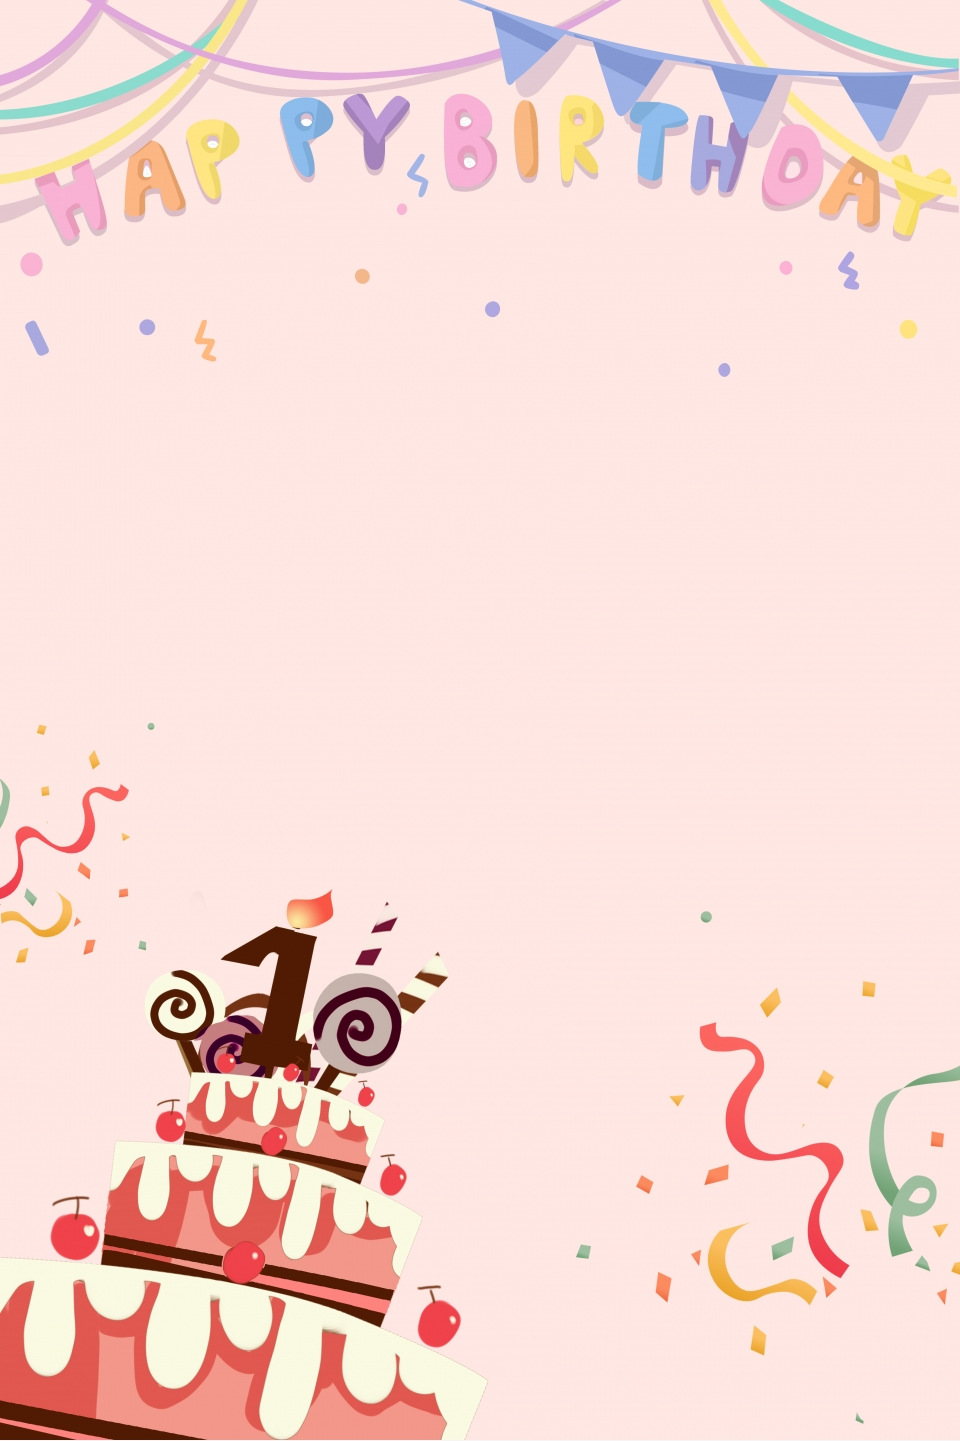 Birthday Poster Template from png.pngtree.com